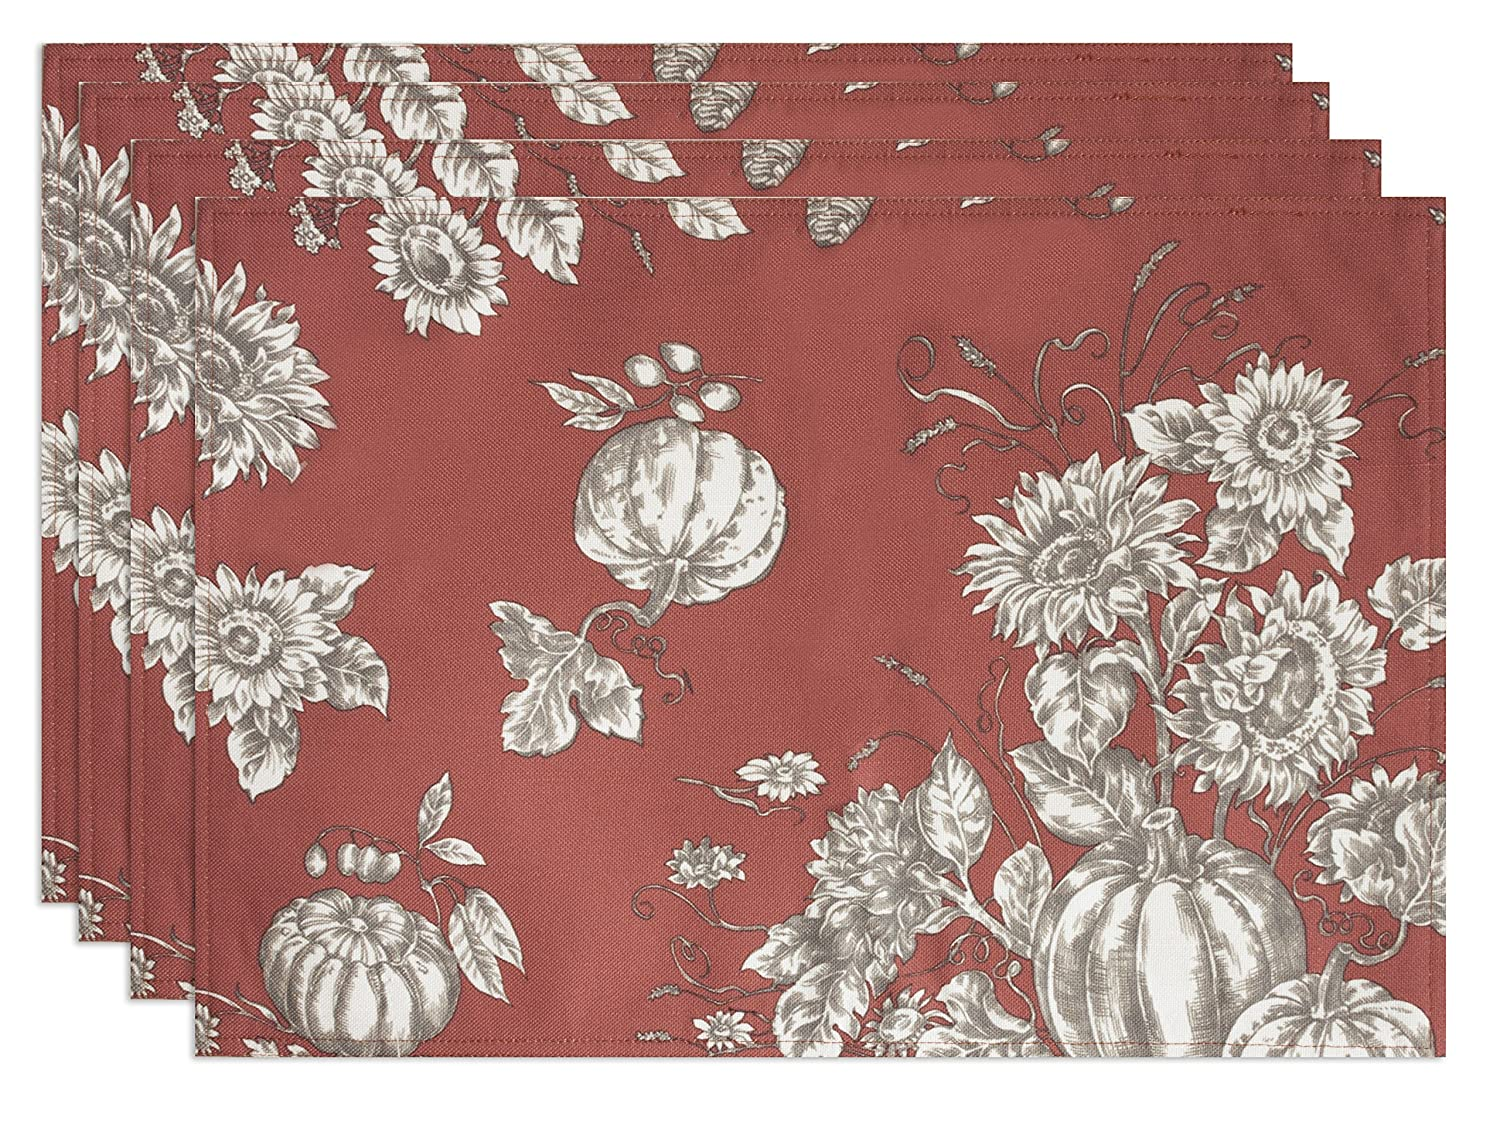 Bardwil 2365 Portsmith Placemats ( 4 )のセット、13